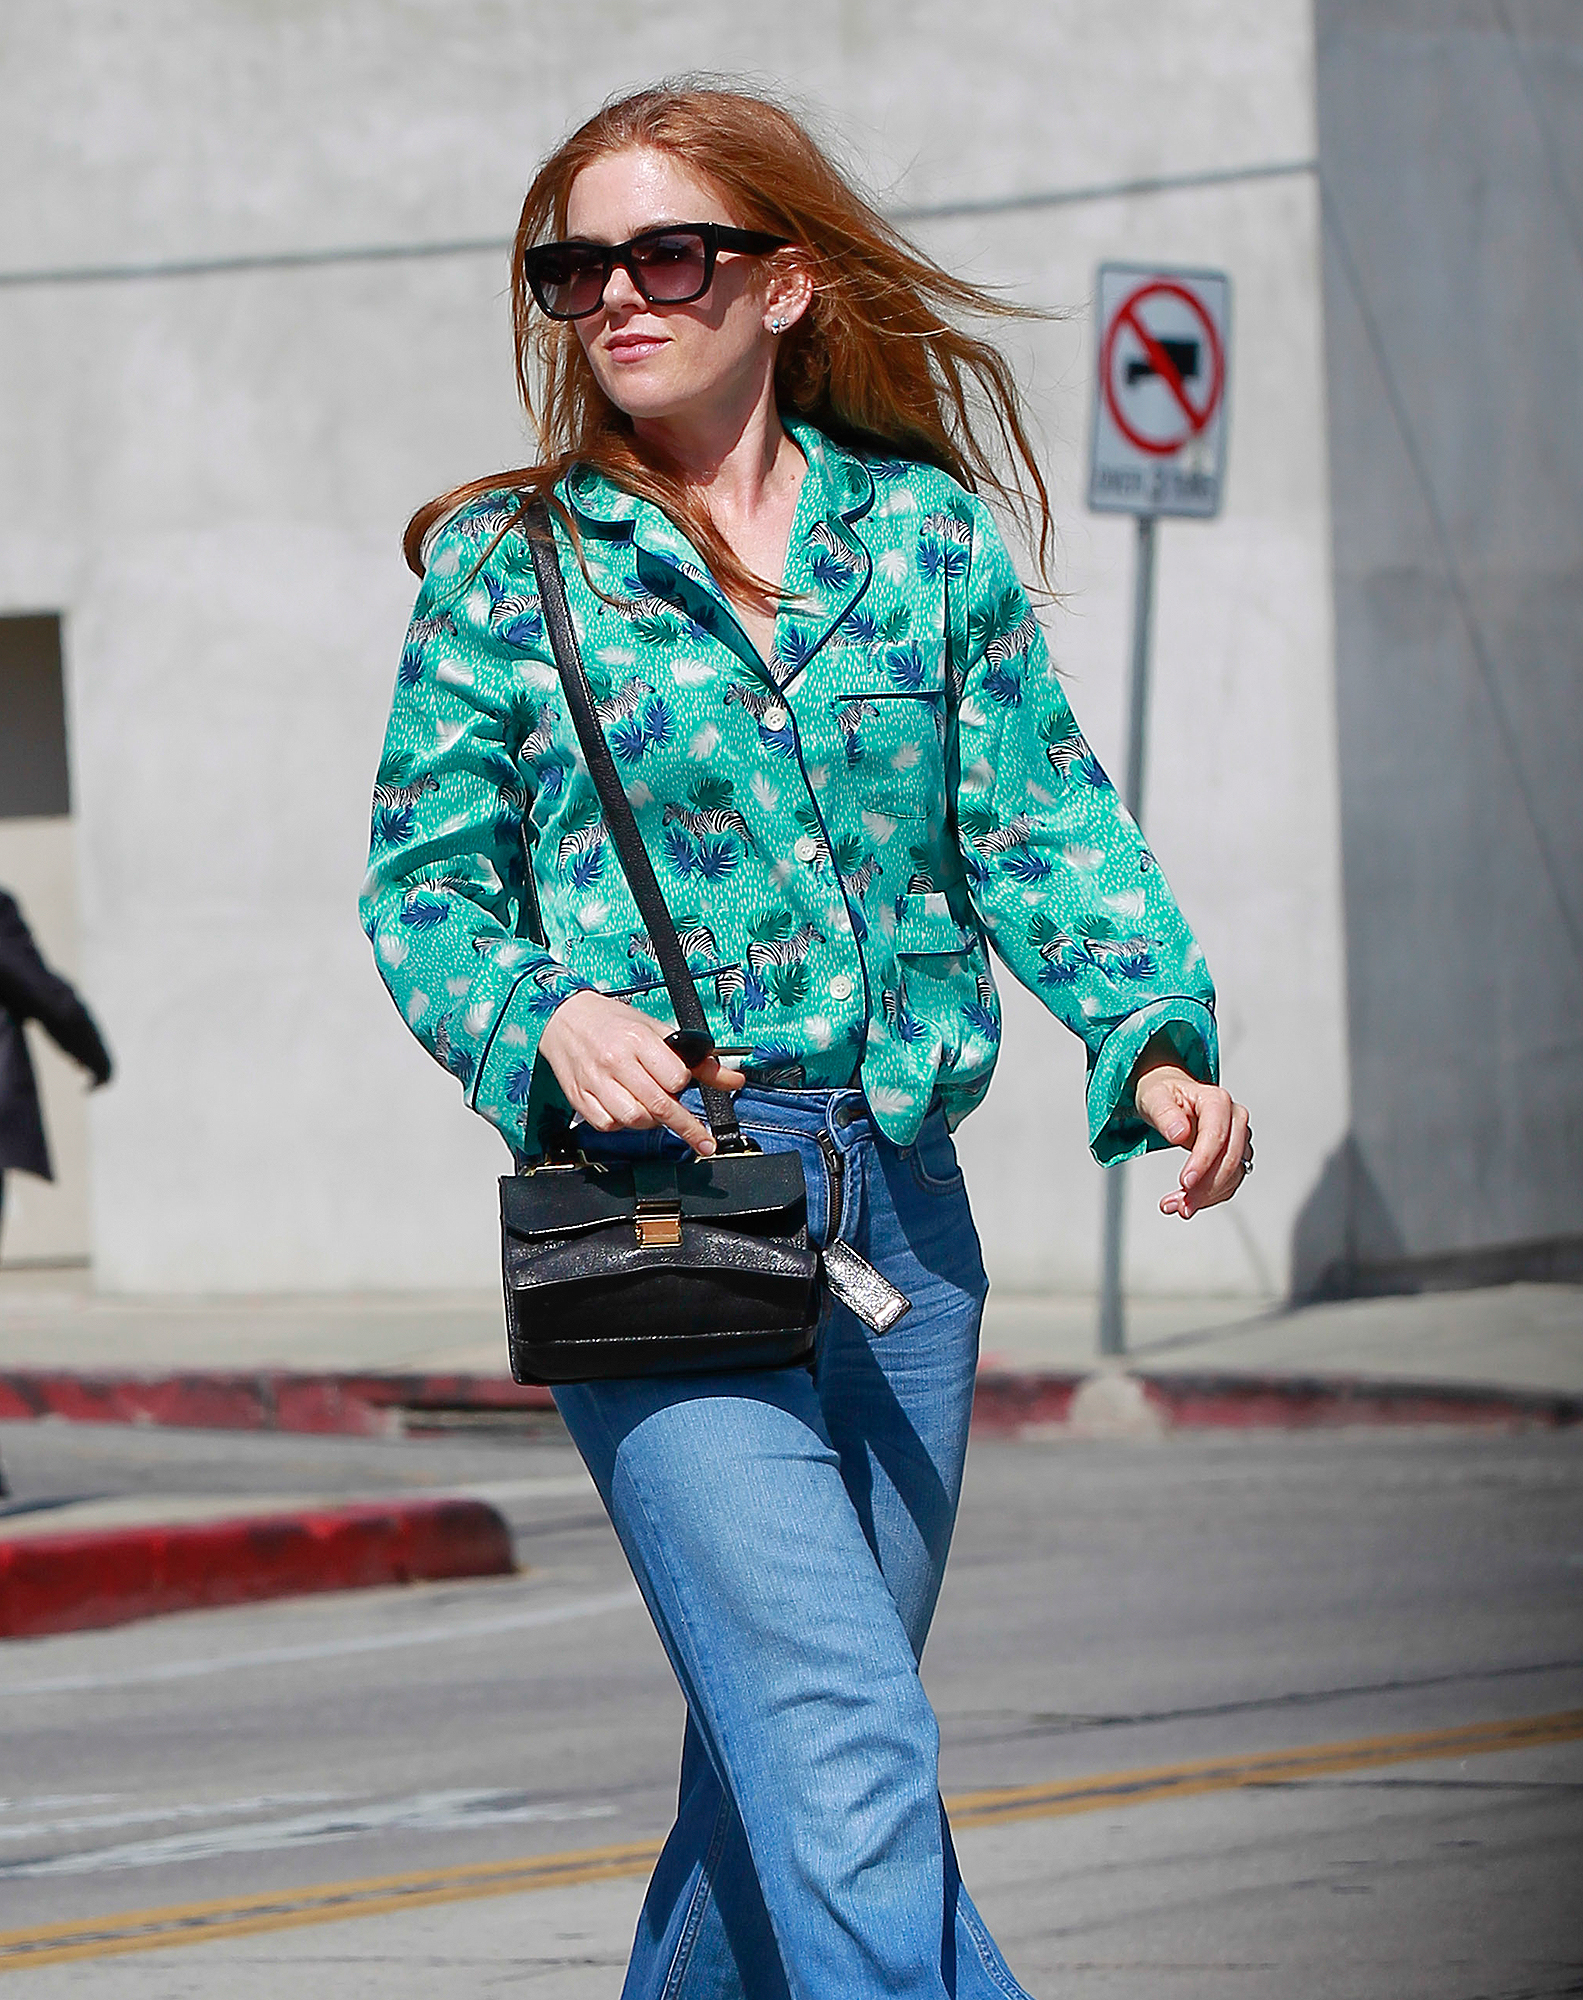 EXCLUSIVE: Isla Fisher spotted leaving Gracias Madre in Los Angeles